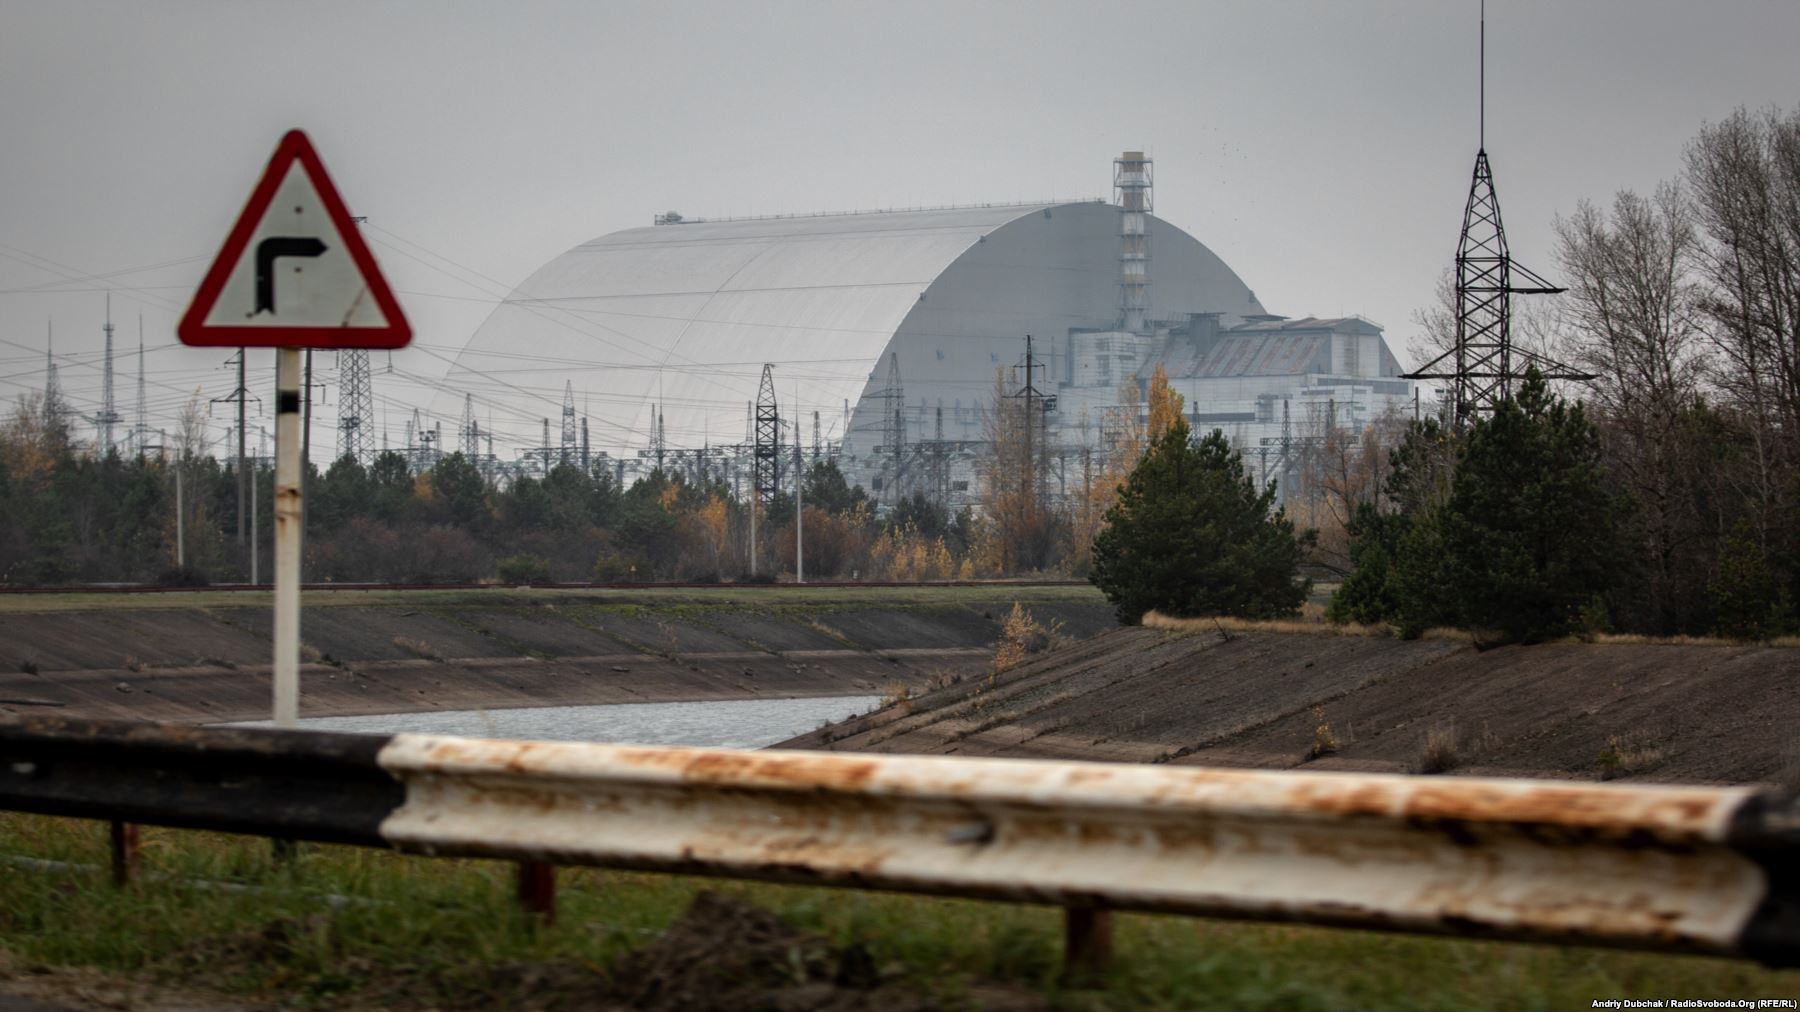 Chernobyl's New Safe Confinement (NSC) was designed to contain radiation for the next century. Photo by: Andriy Dubchak